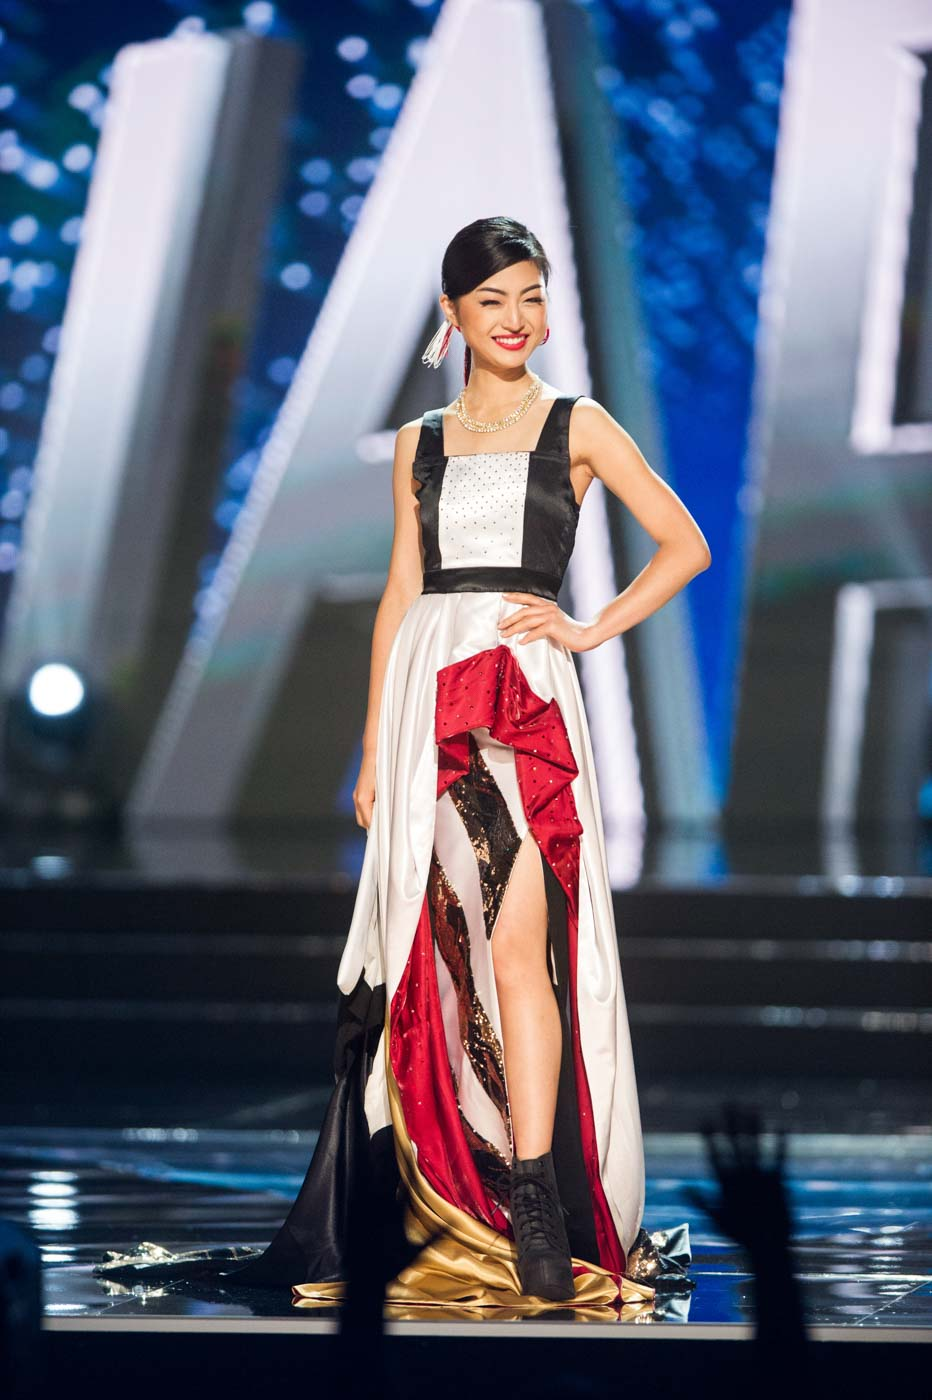 Sari Nakazawa, Miss Japan 2016